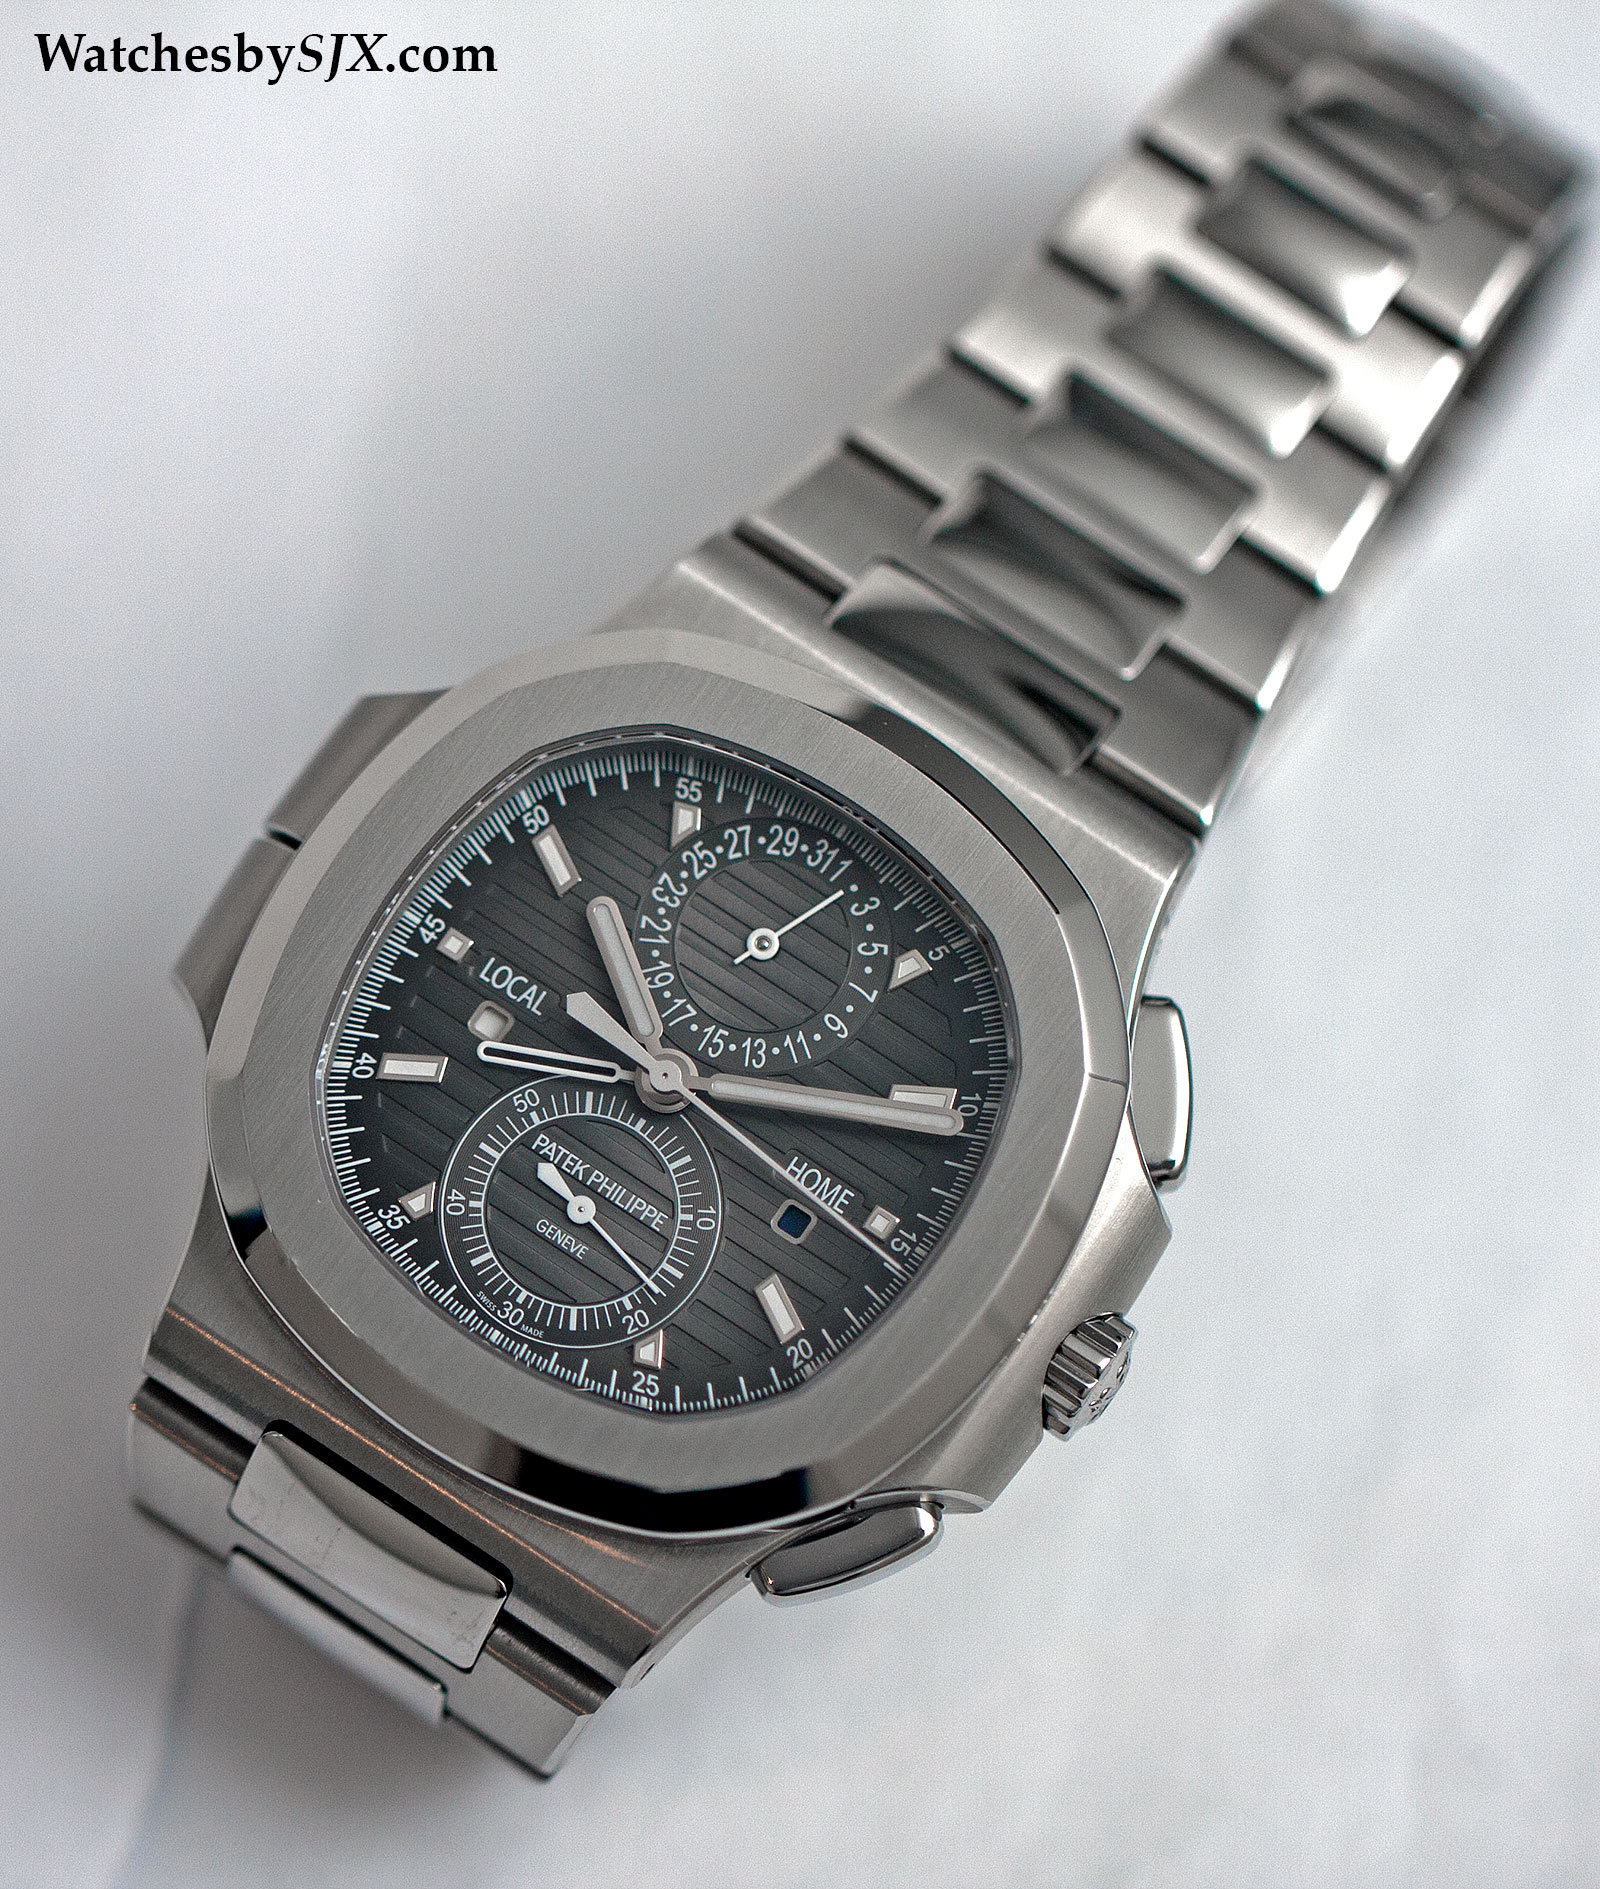 Patek Philippe Nautilus Travel Time 5990-1A 4